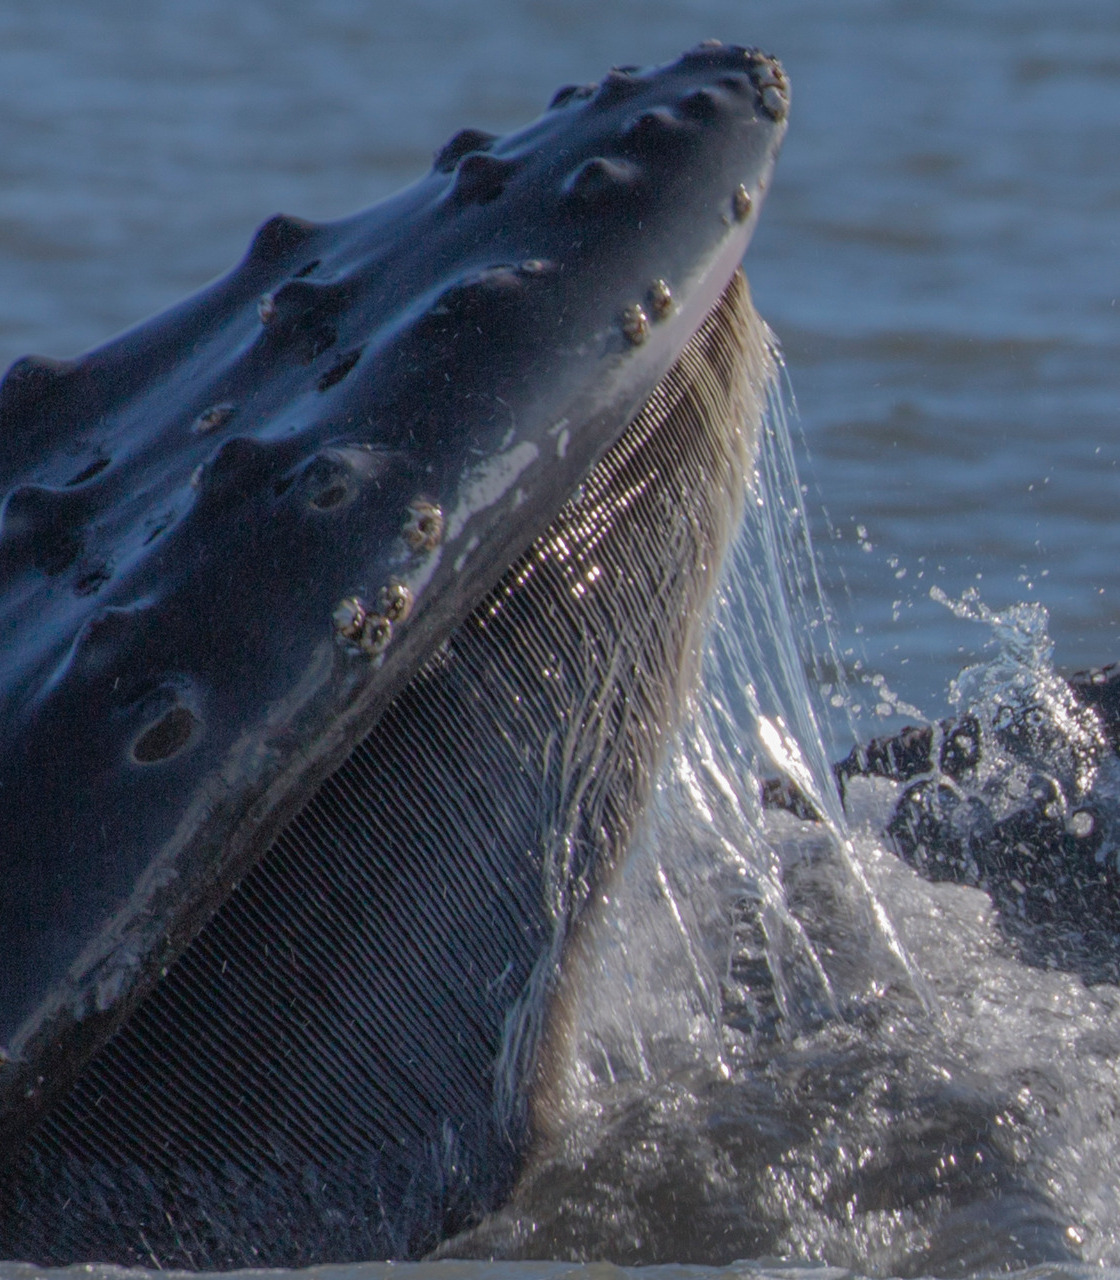 CLOSE-UP OF HUMPBACK WHALE BALEEN...